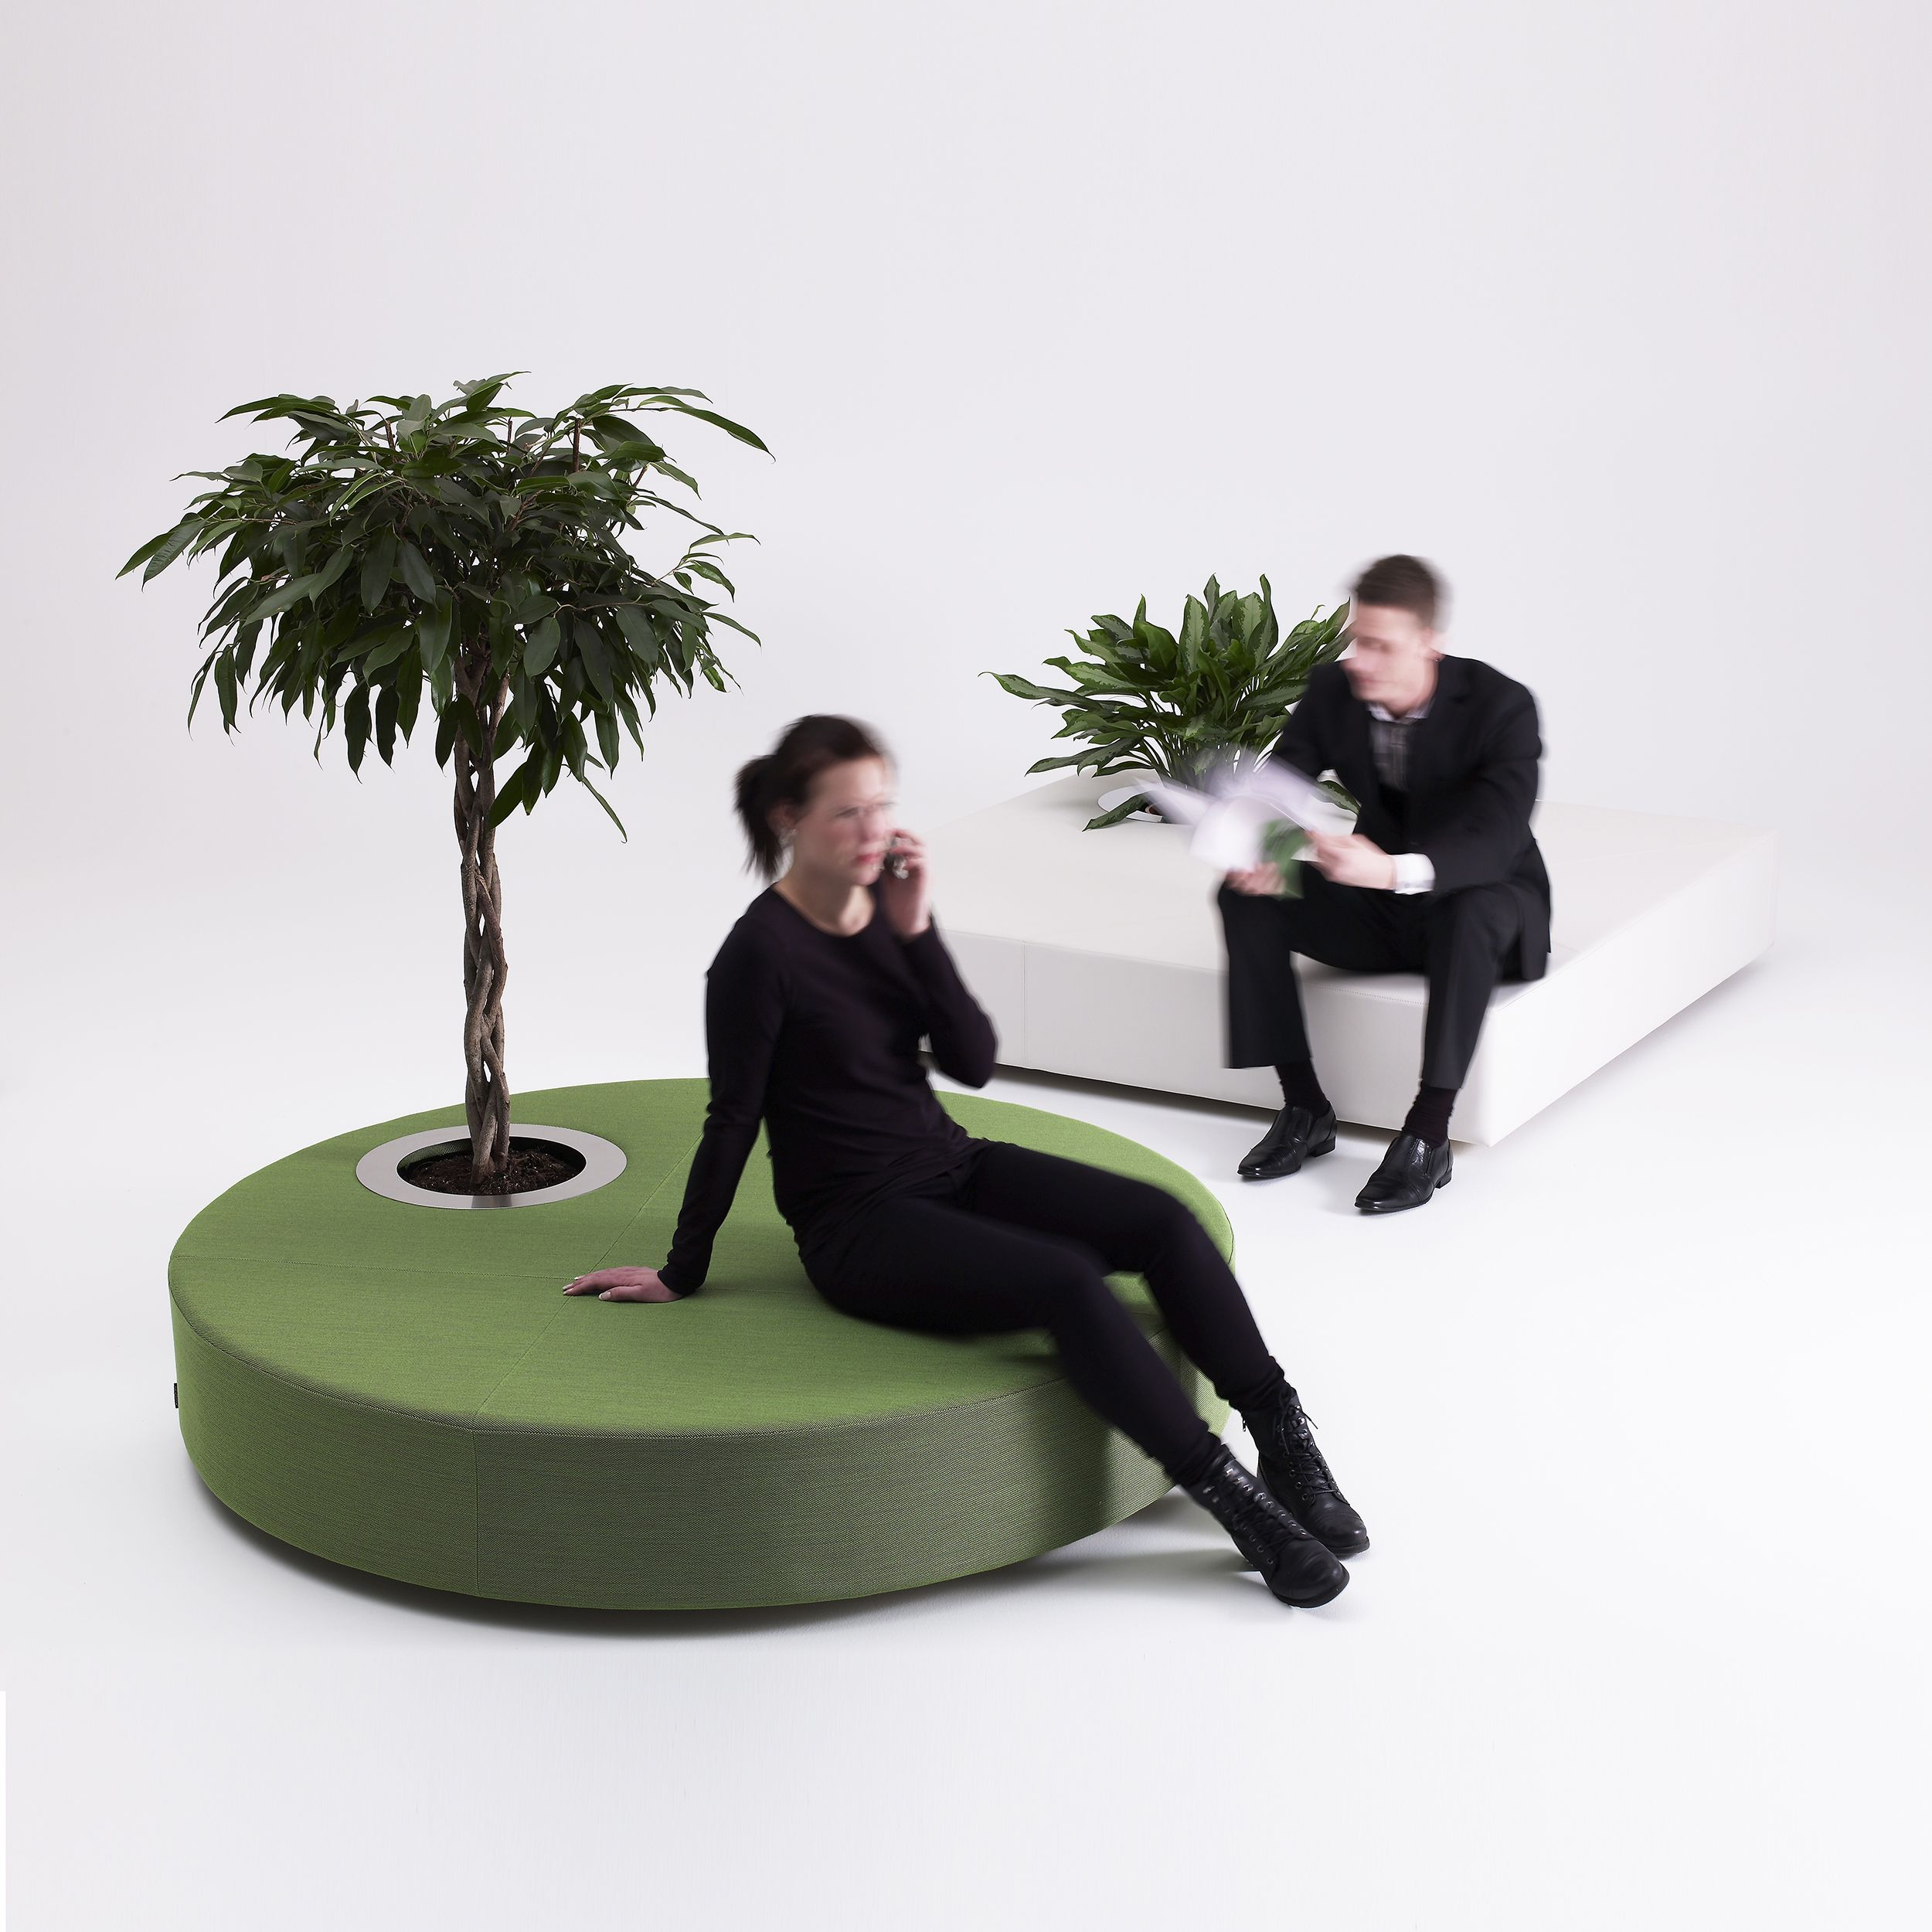 Attractive Green Islands, O2asis U2013 Offecct Great Pictures